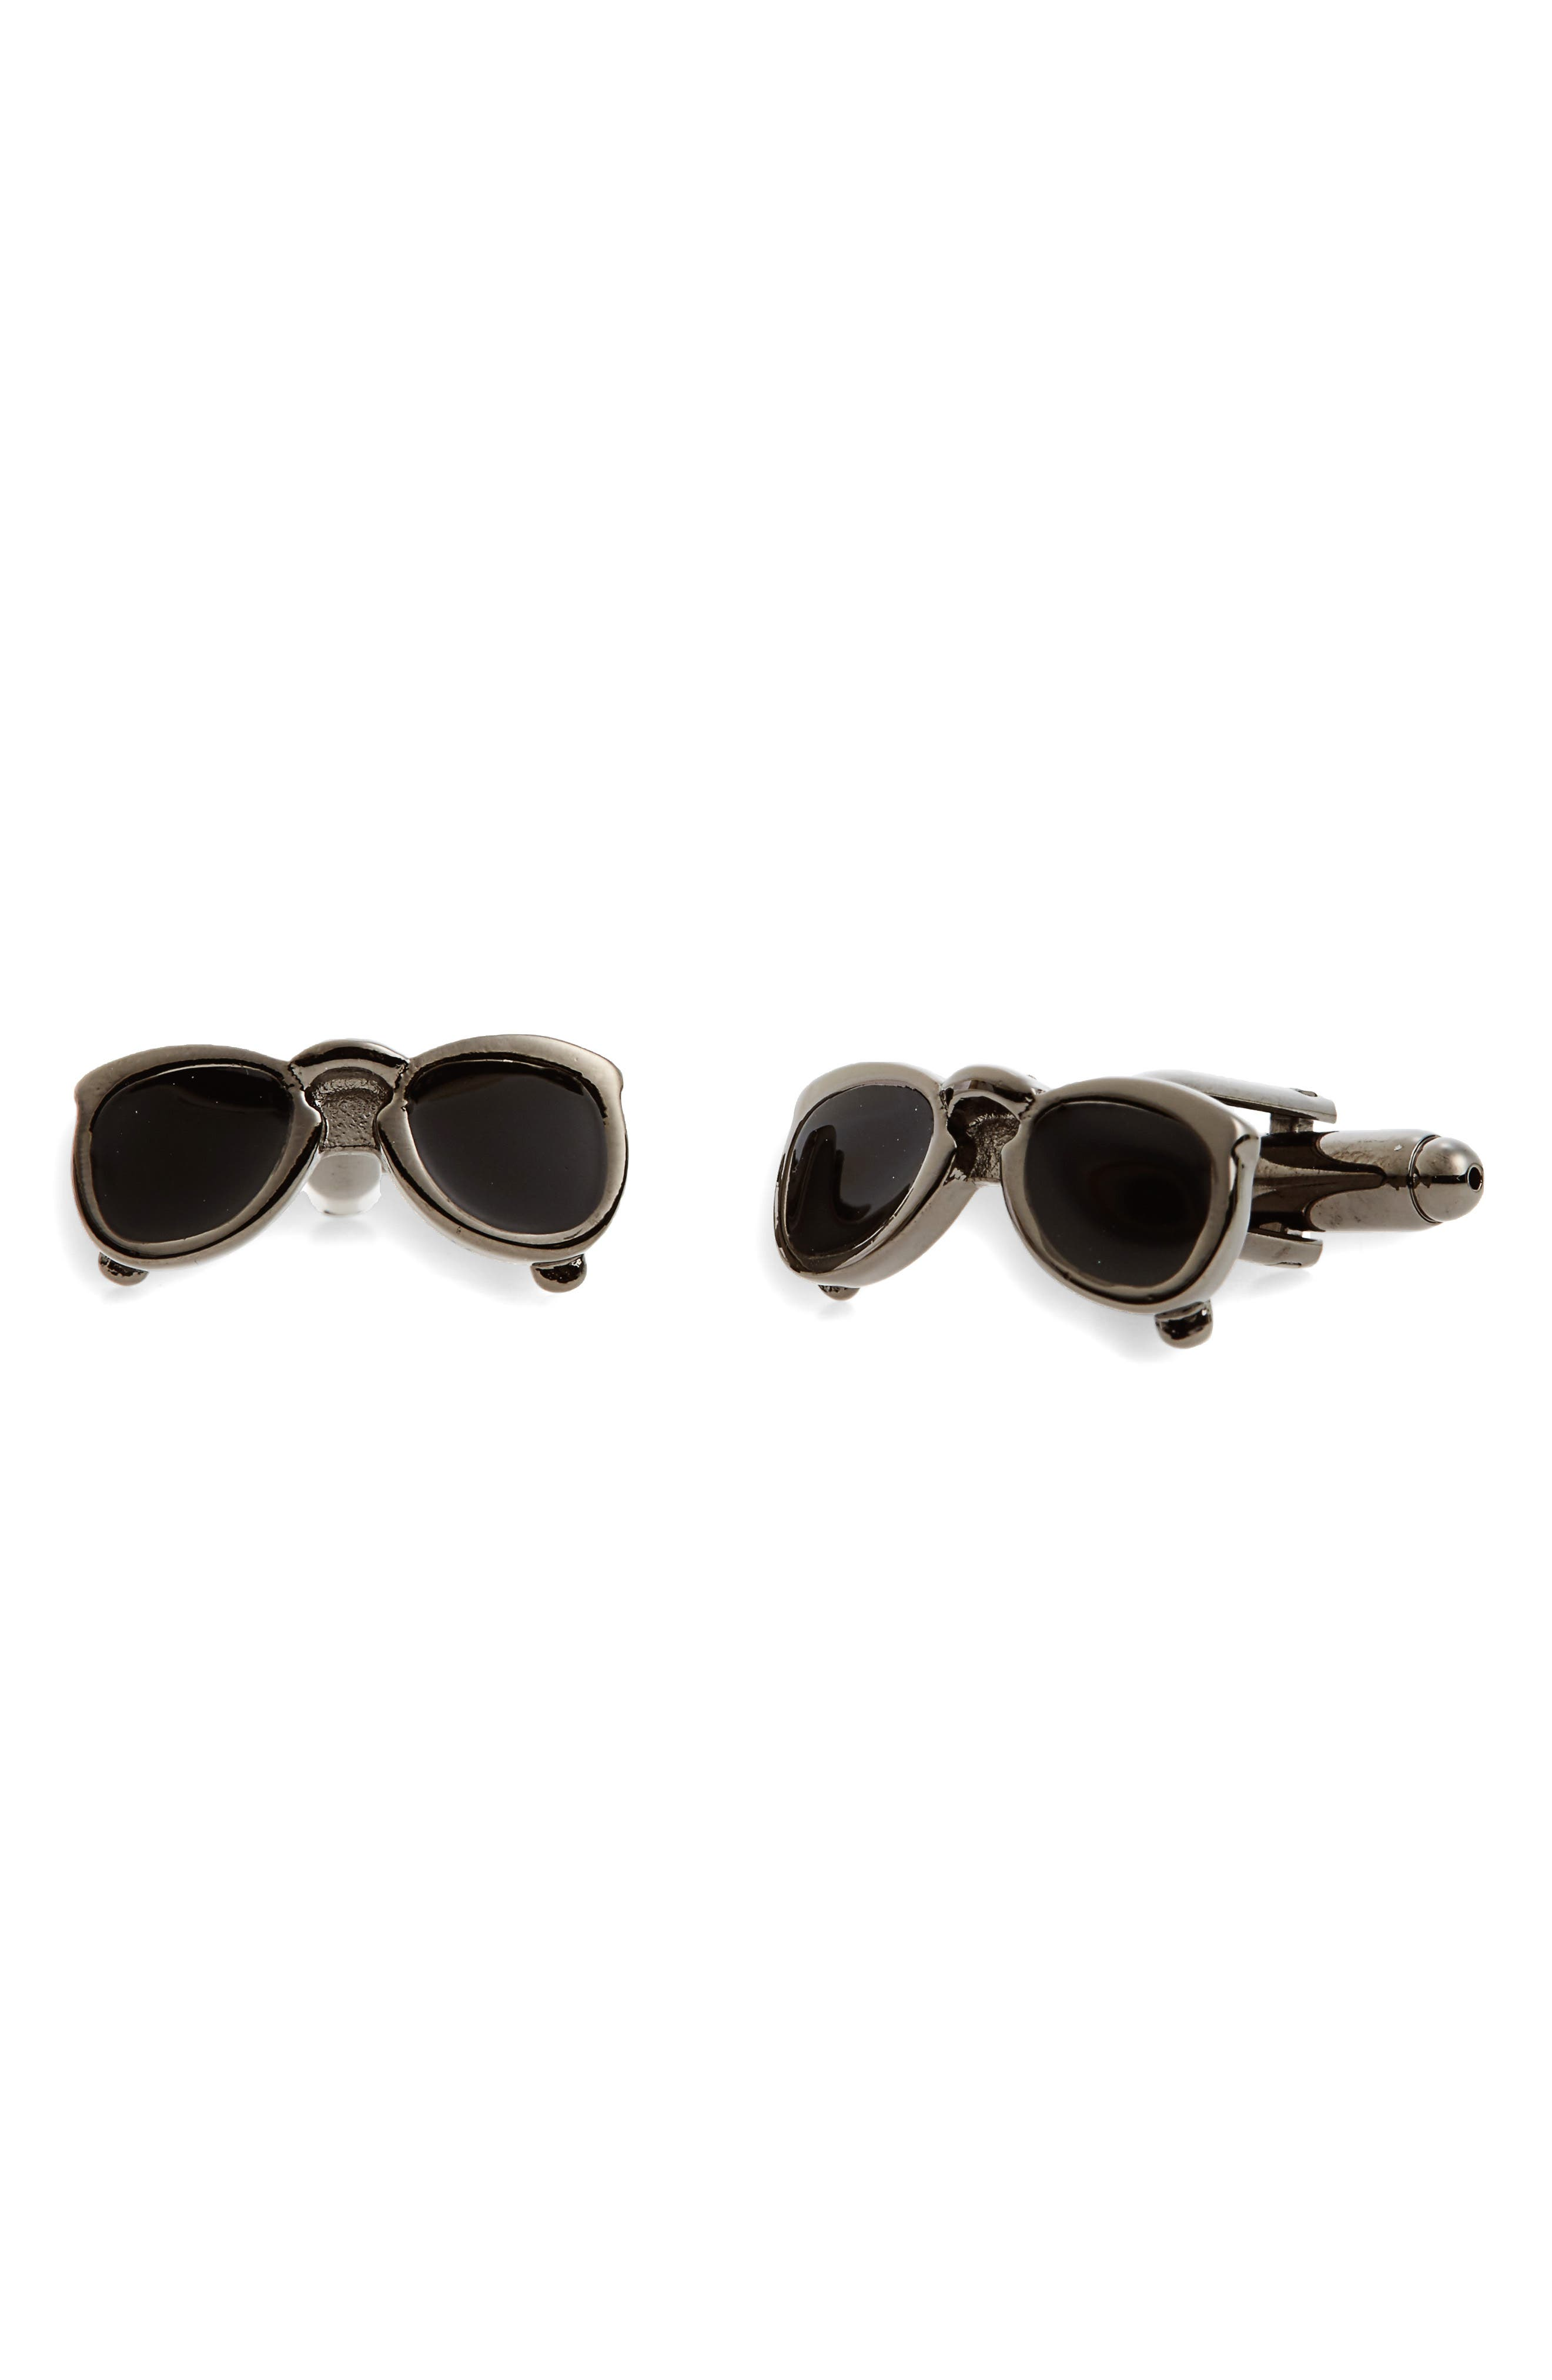 Alternate Image 1 Selected - Link Up Sunglasses Cuff Links